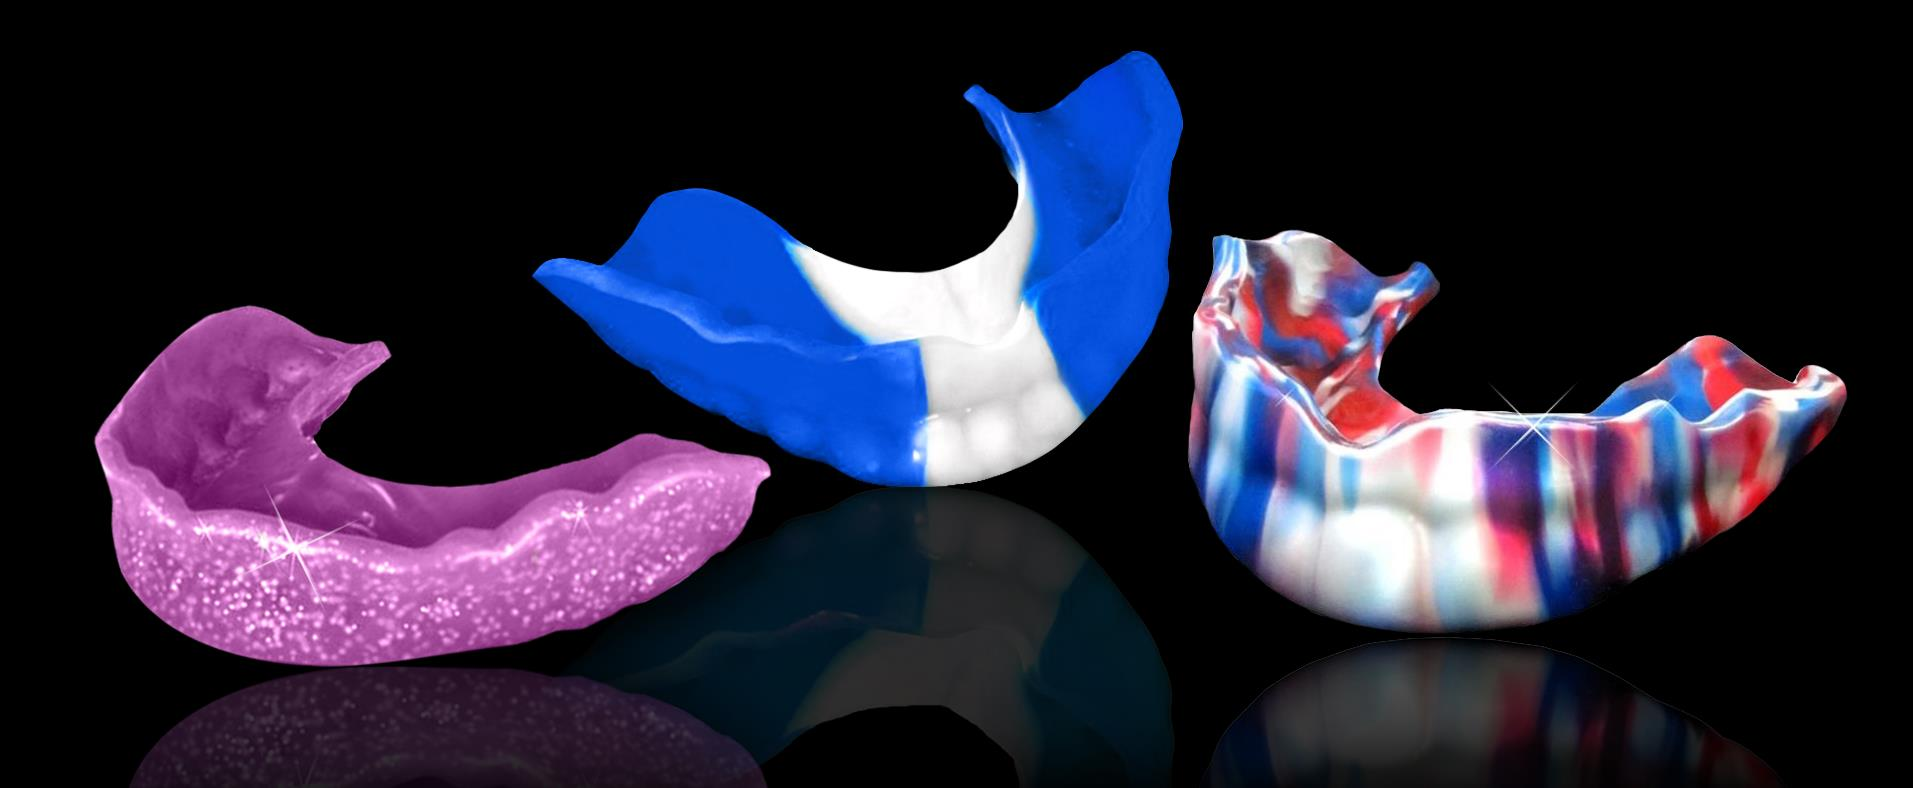 PROFORM SPORTS MOUTHGUARDS HEADER IMAGE